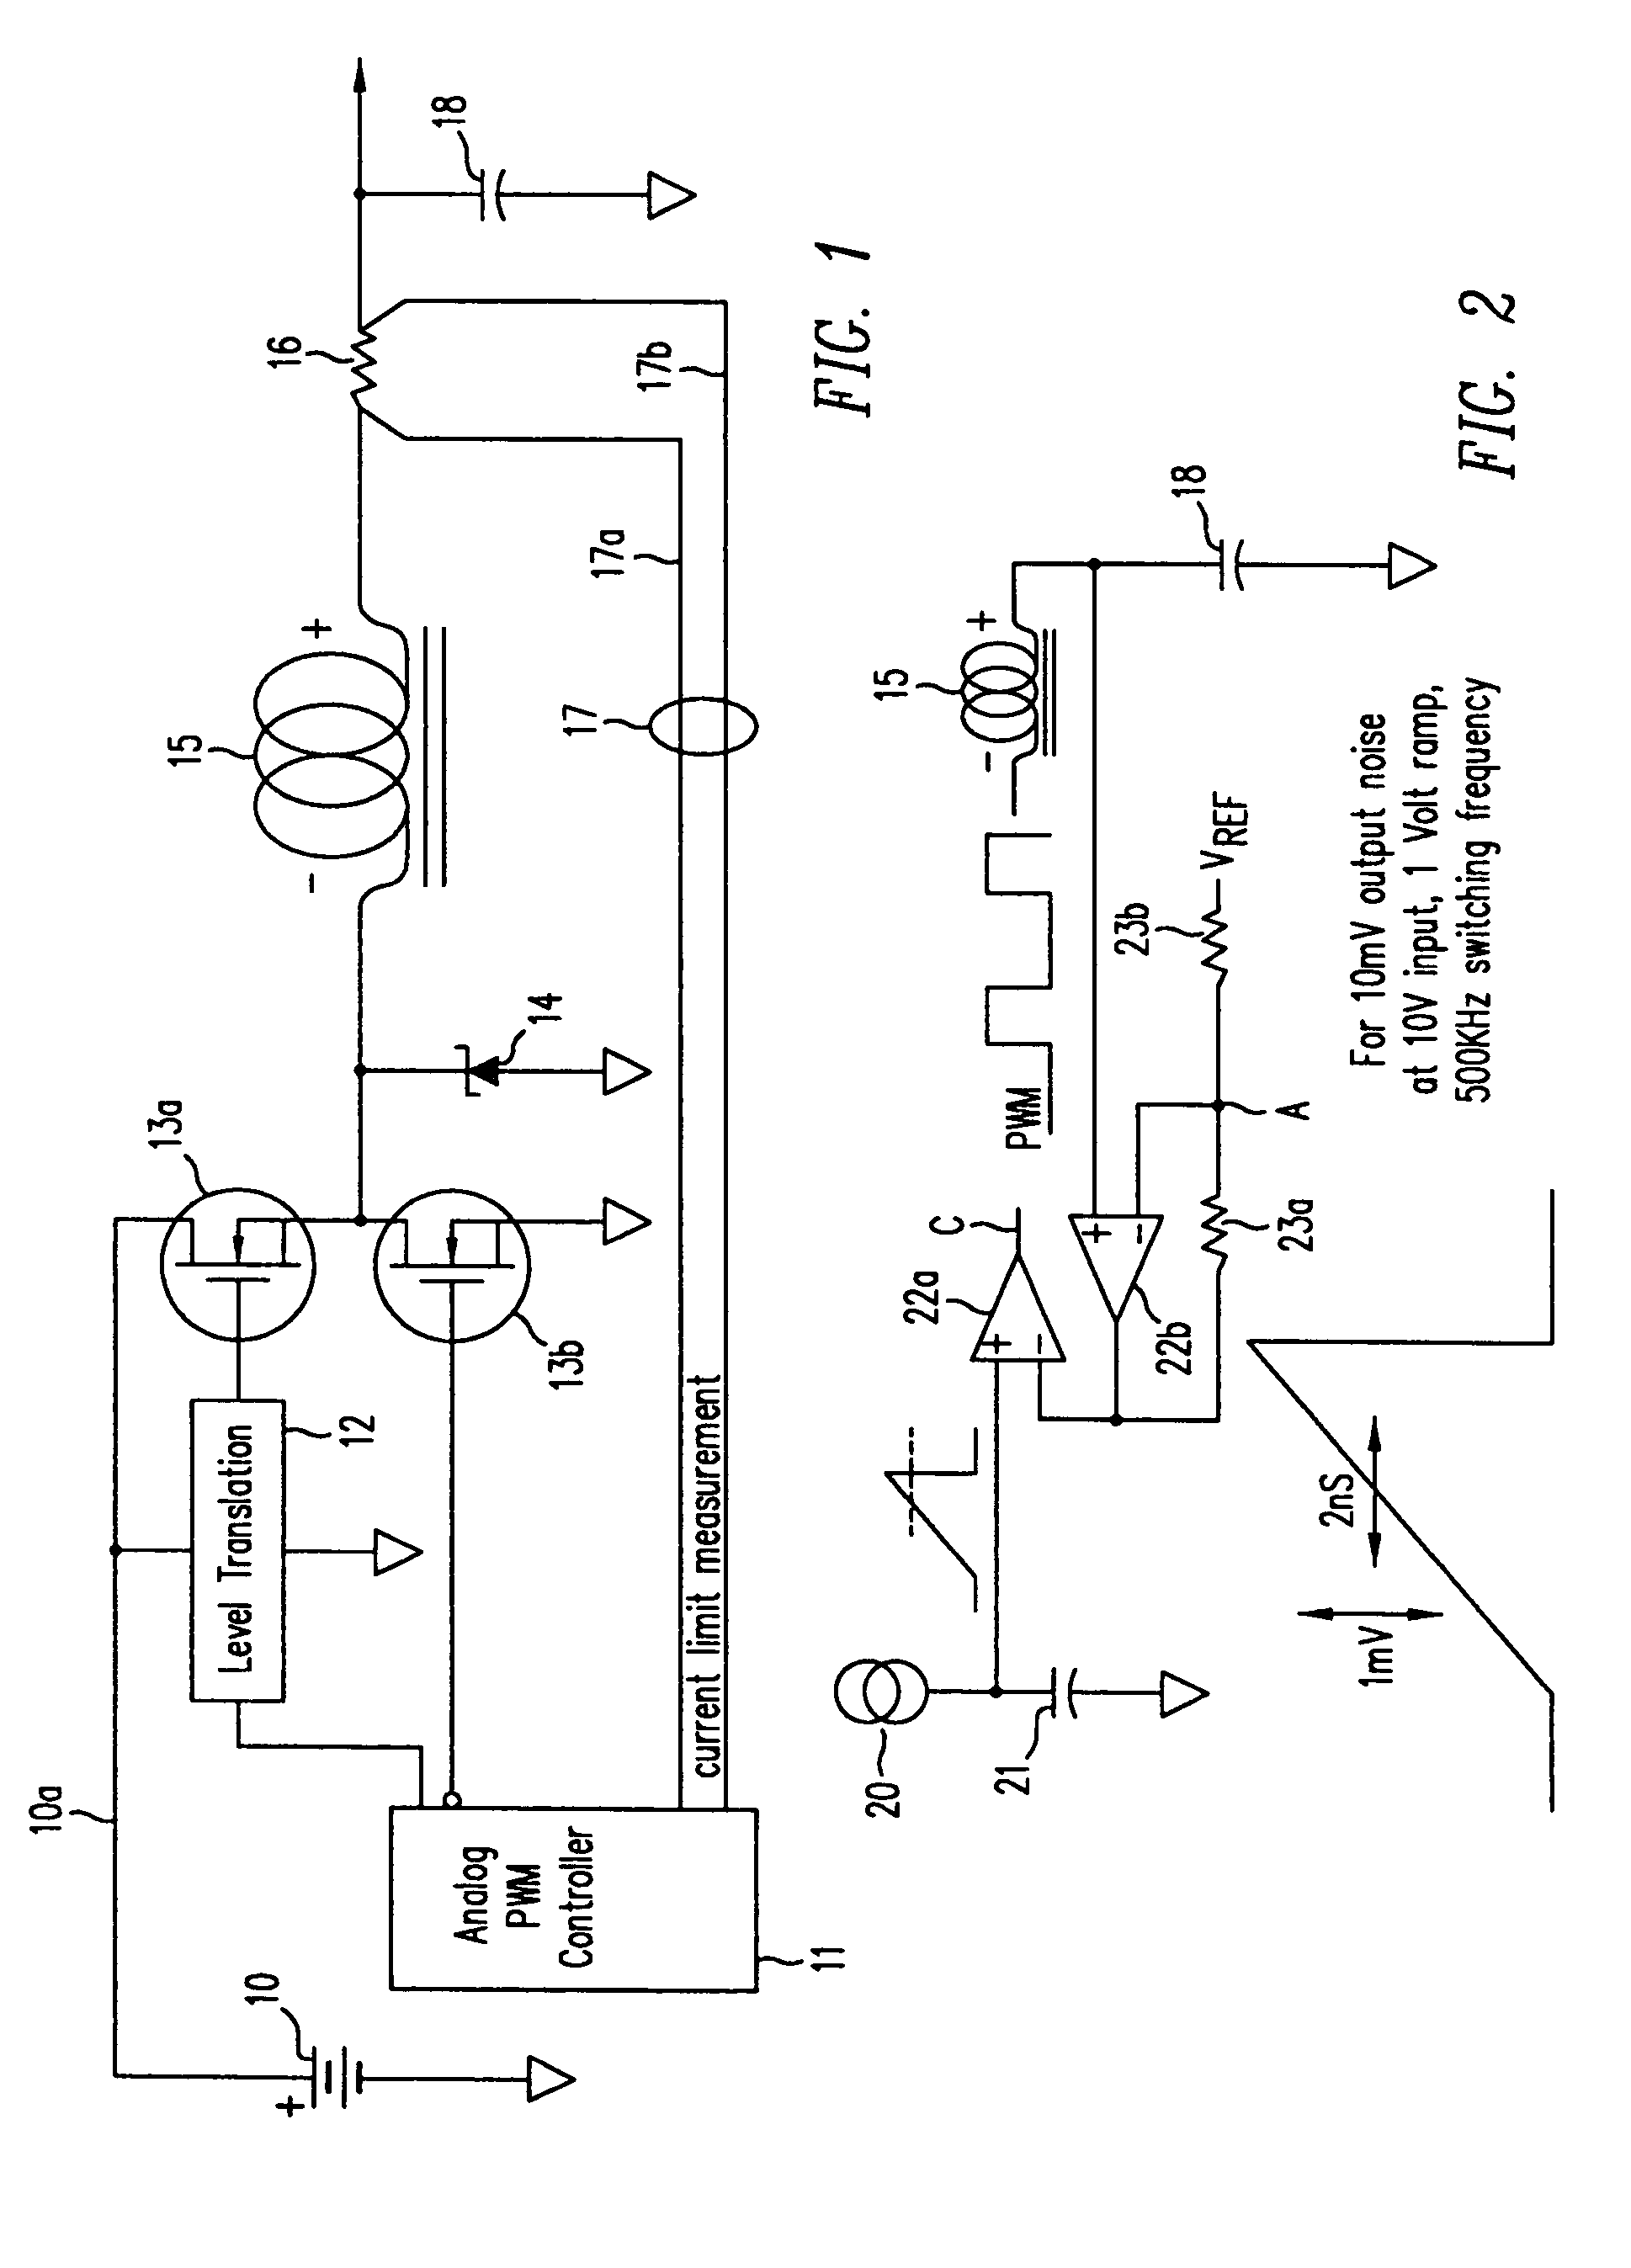 Patent Us7279995 Circuit For Controlling The Time Duration Of A Electrical Showing Current Flow By Pmb 300 Ad Diagram Drawing